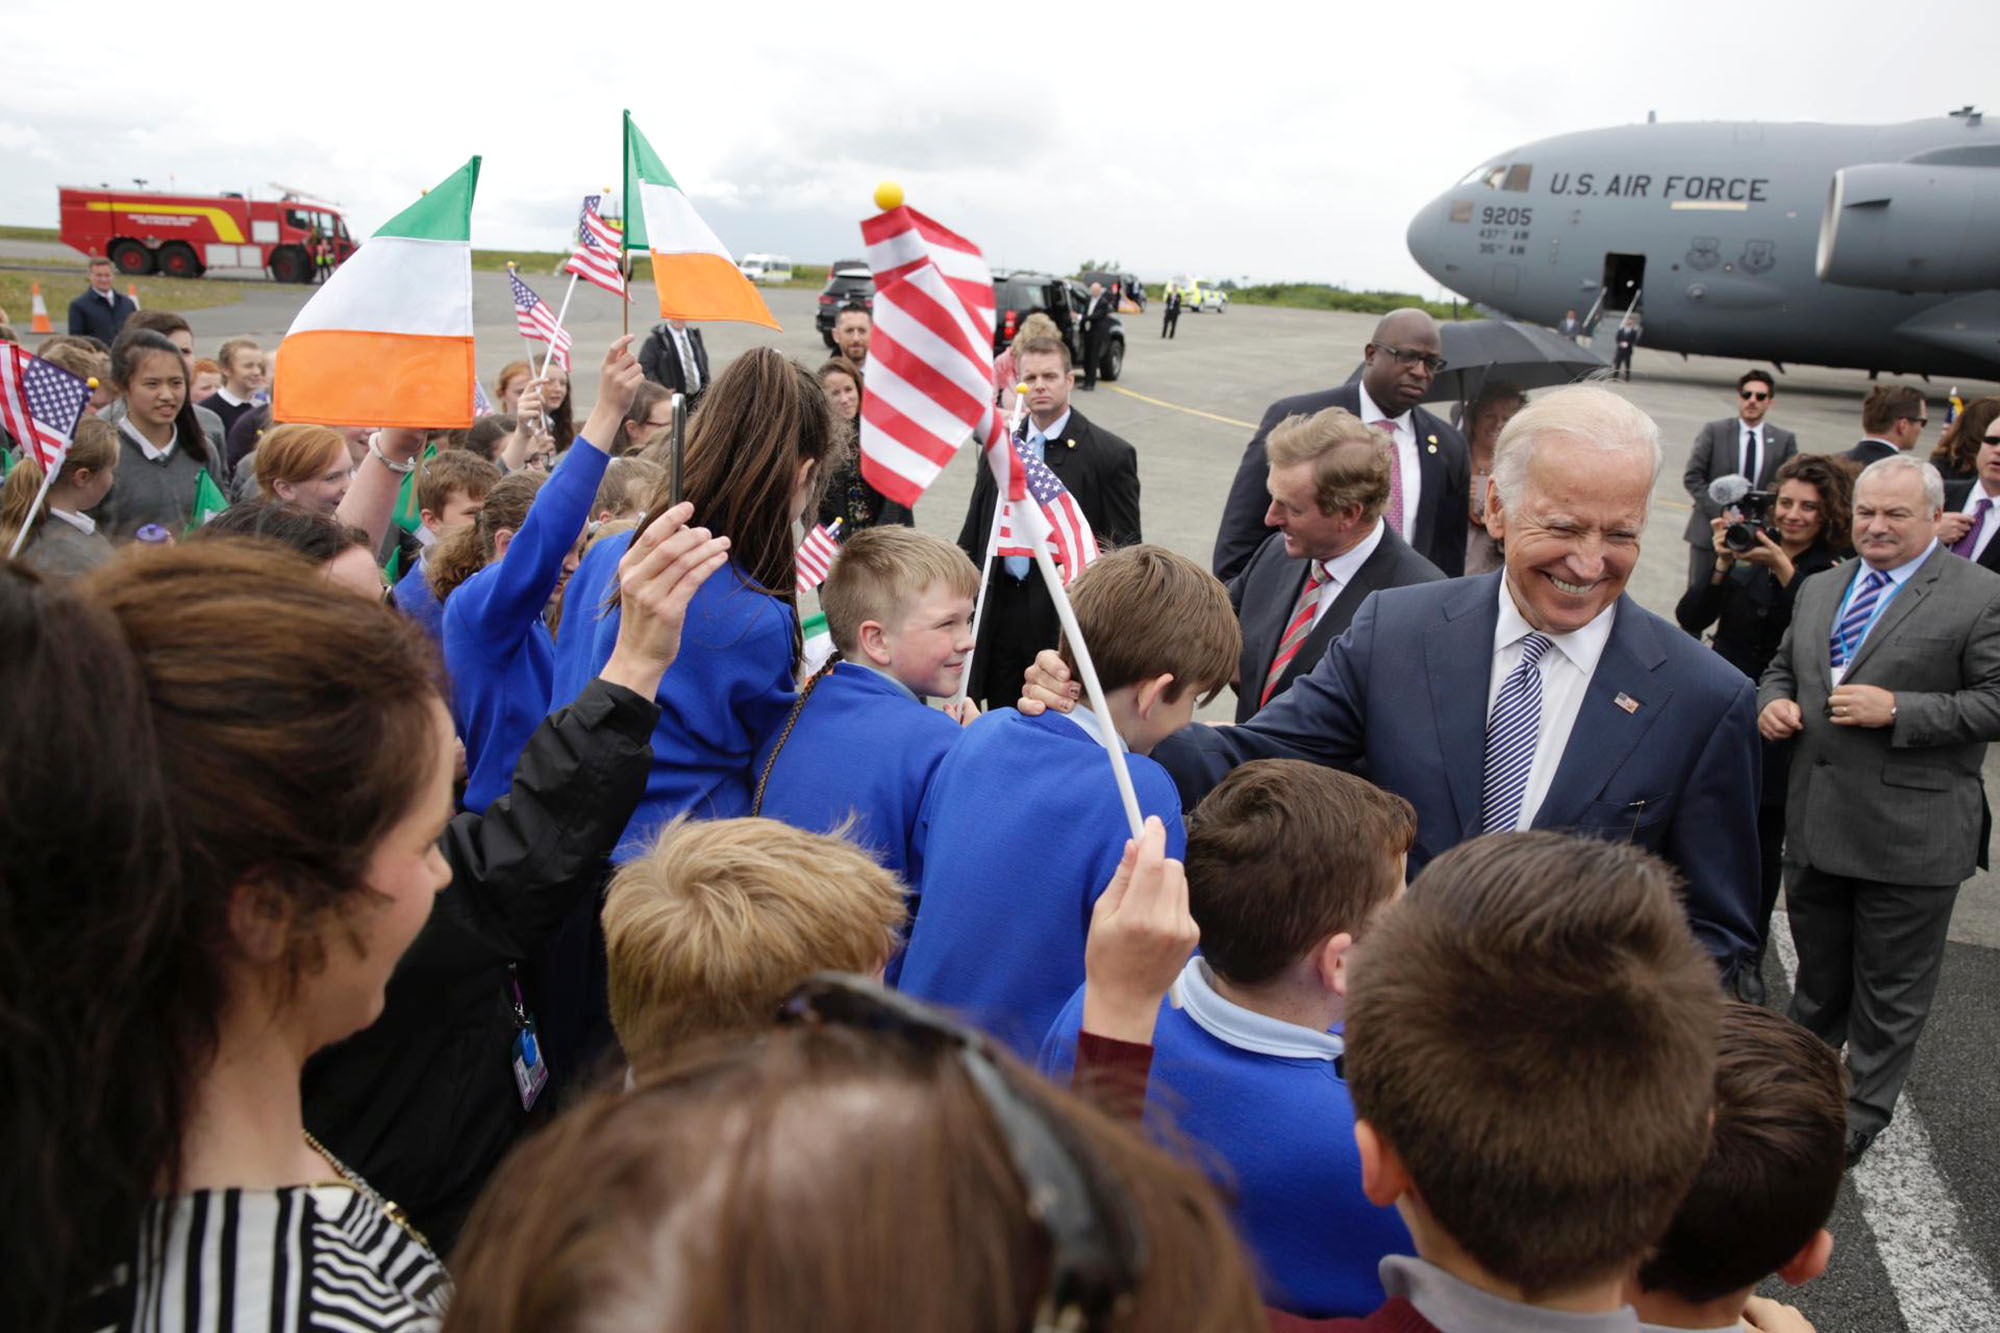 Vice President Joe Biden greets local students with Taoiseach Enda Kenny upon arrival at Ireland West Airport Knock in Charlestown, County Mayo, Ireland, June 22, 2016. (Official White House Photo by David Lienemann)